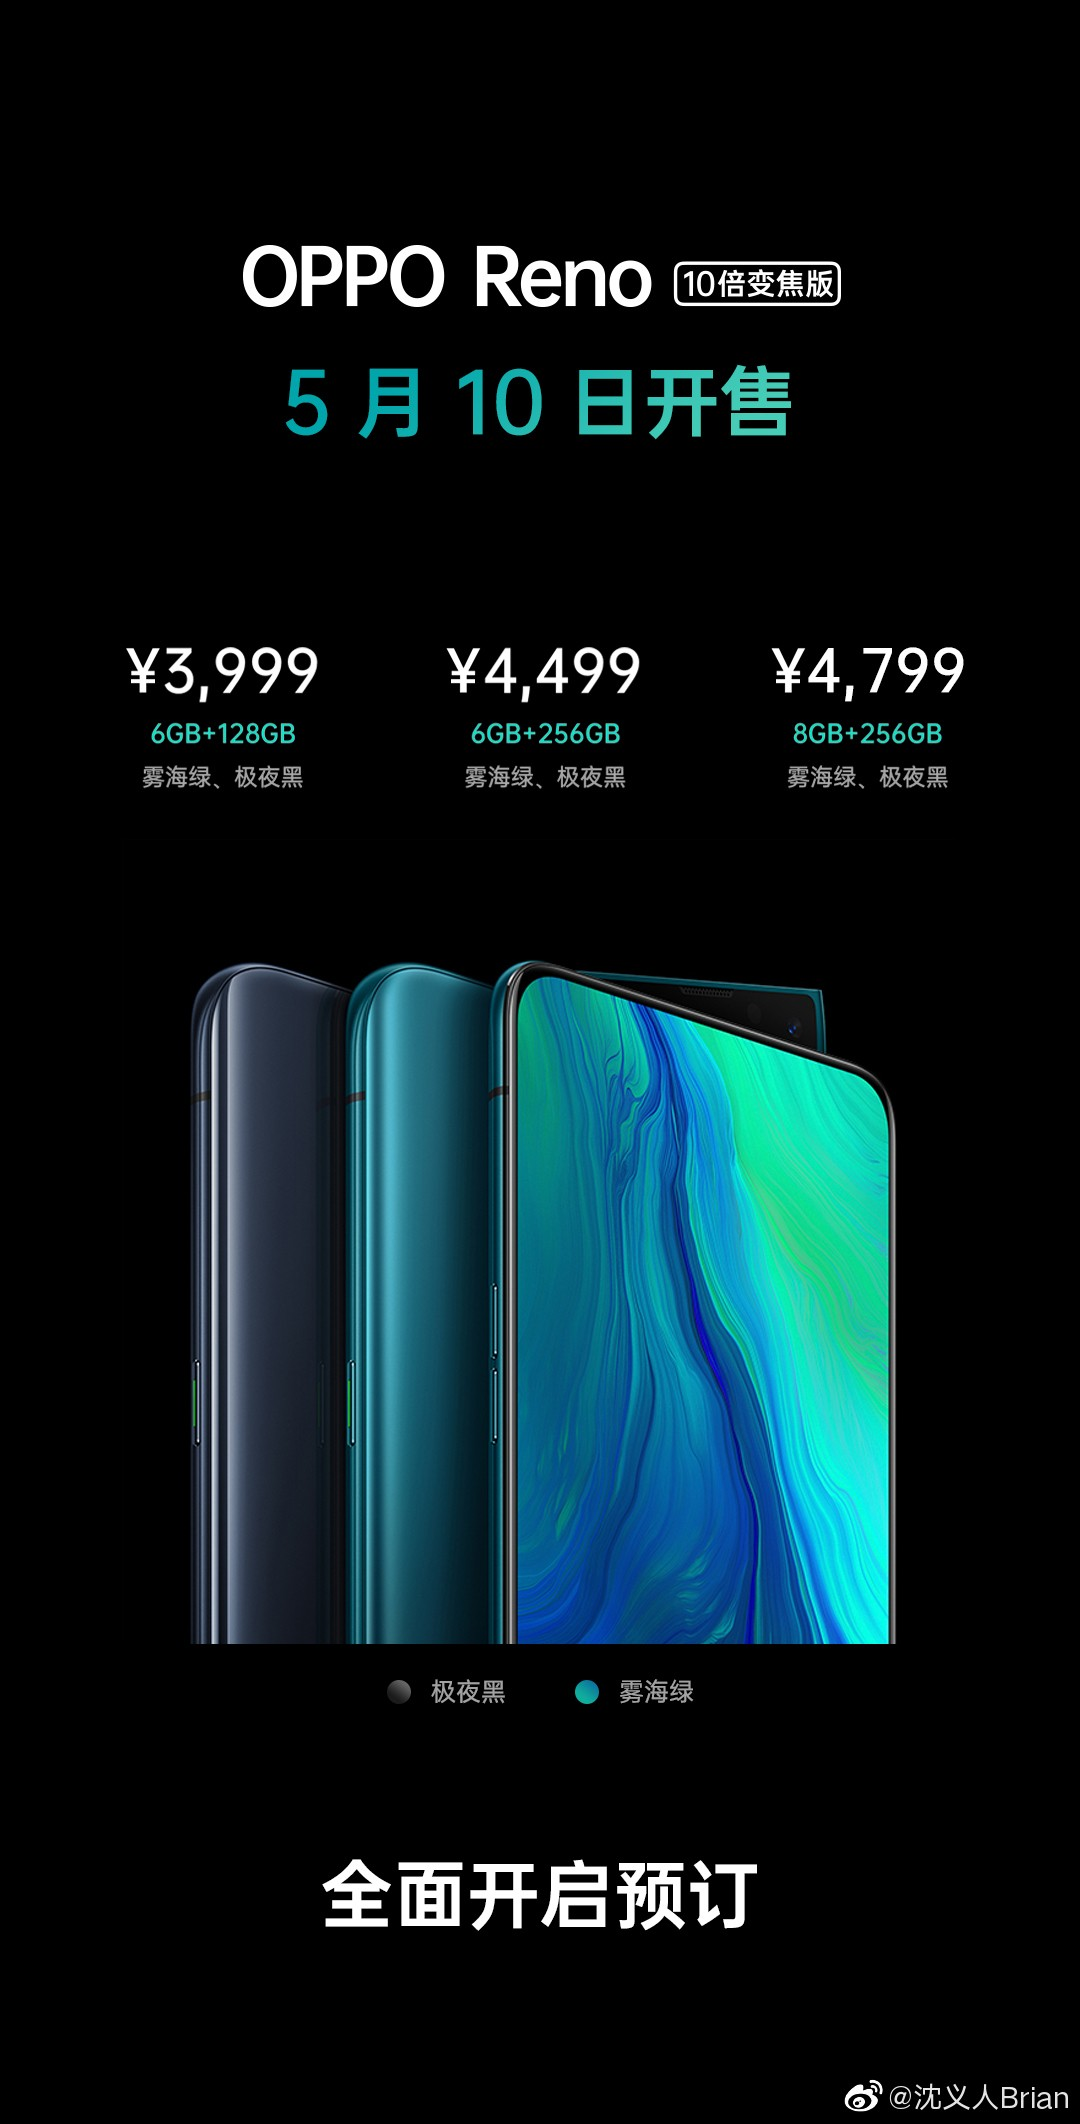 Oppo Reno 10x Zoom Version Price